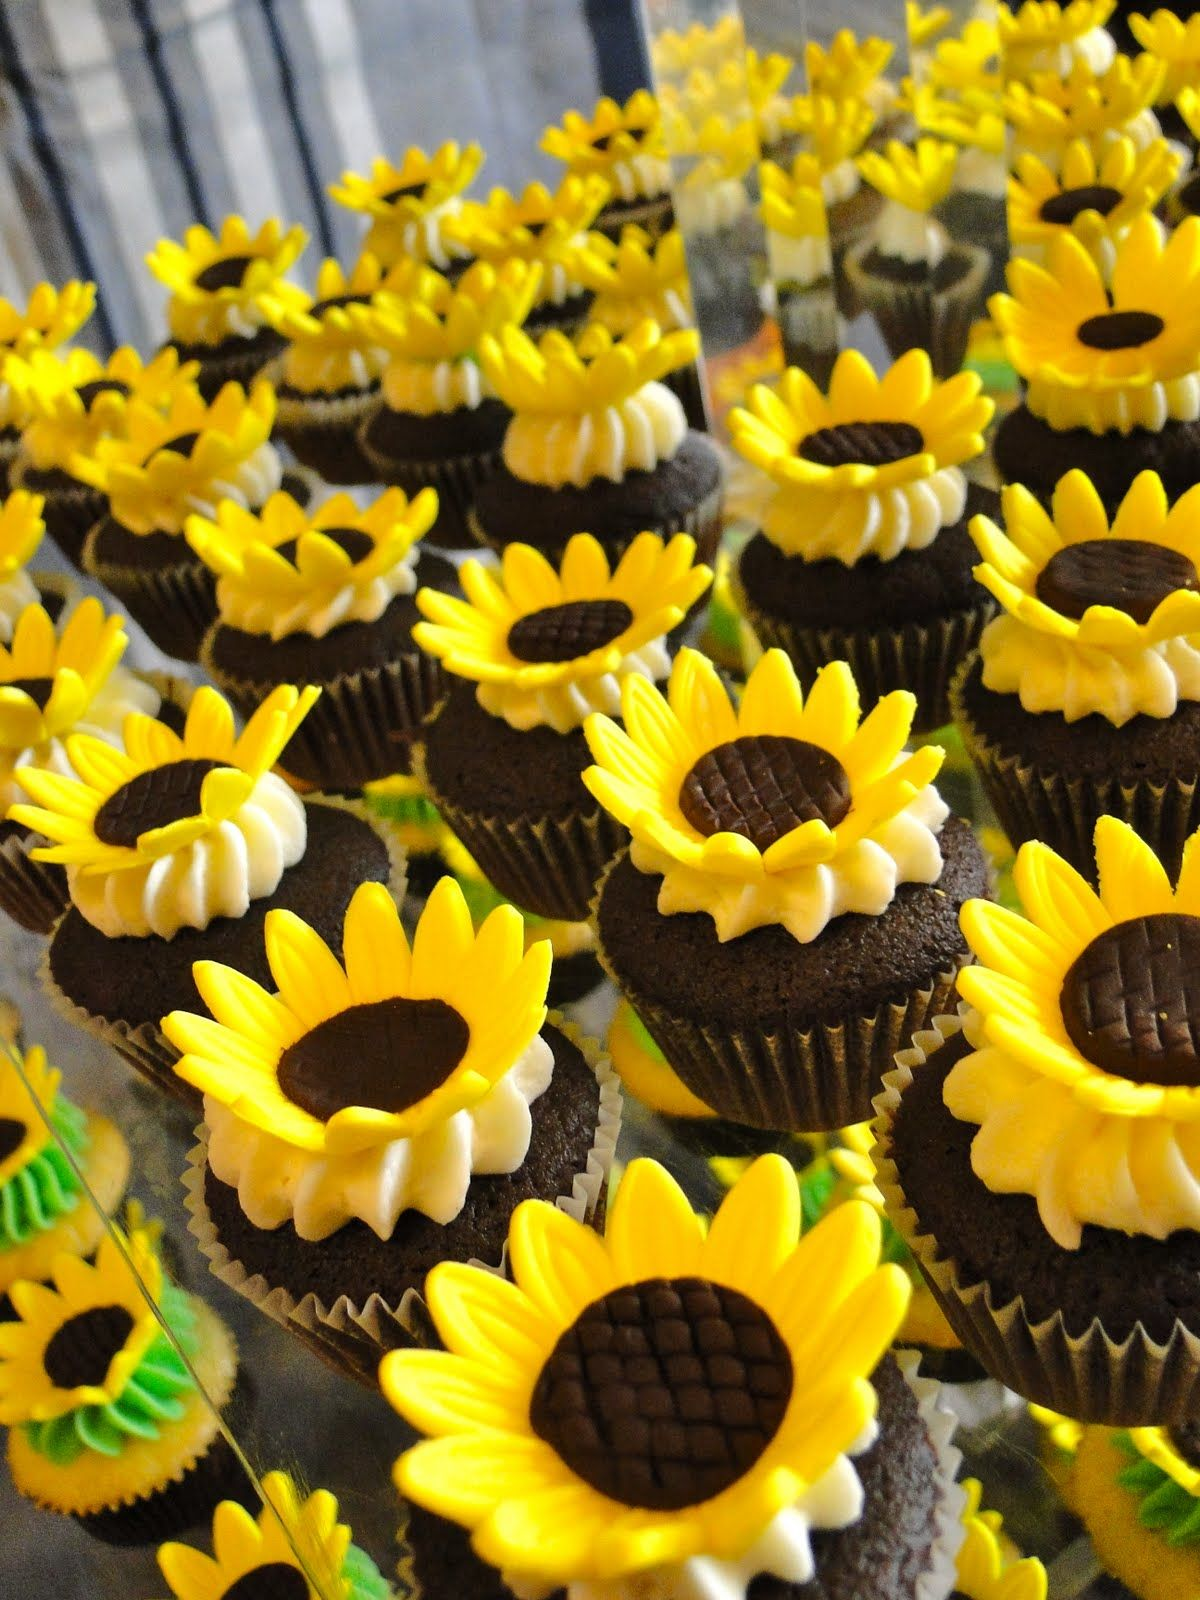 Sunflower wedding decorations dont miss sunflower wedding sunflower wedding decorations dont miss sunflower wedding decoration ideas junglespirit Images